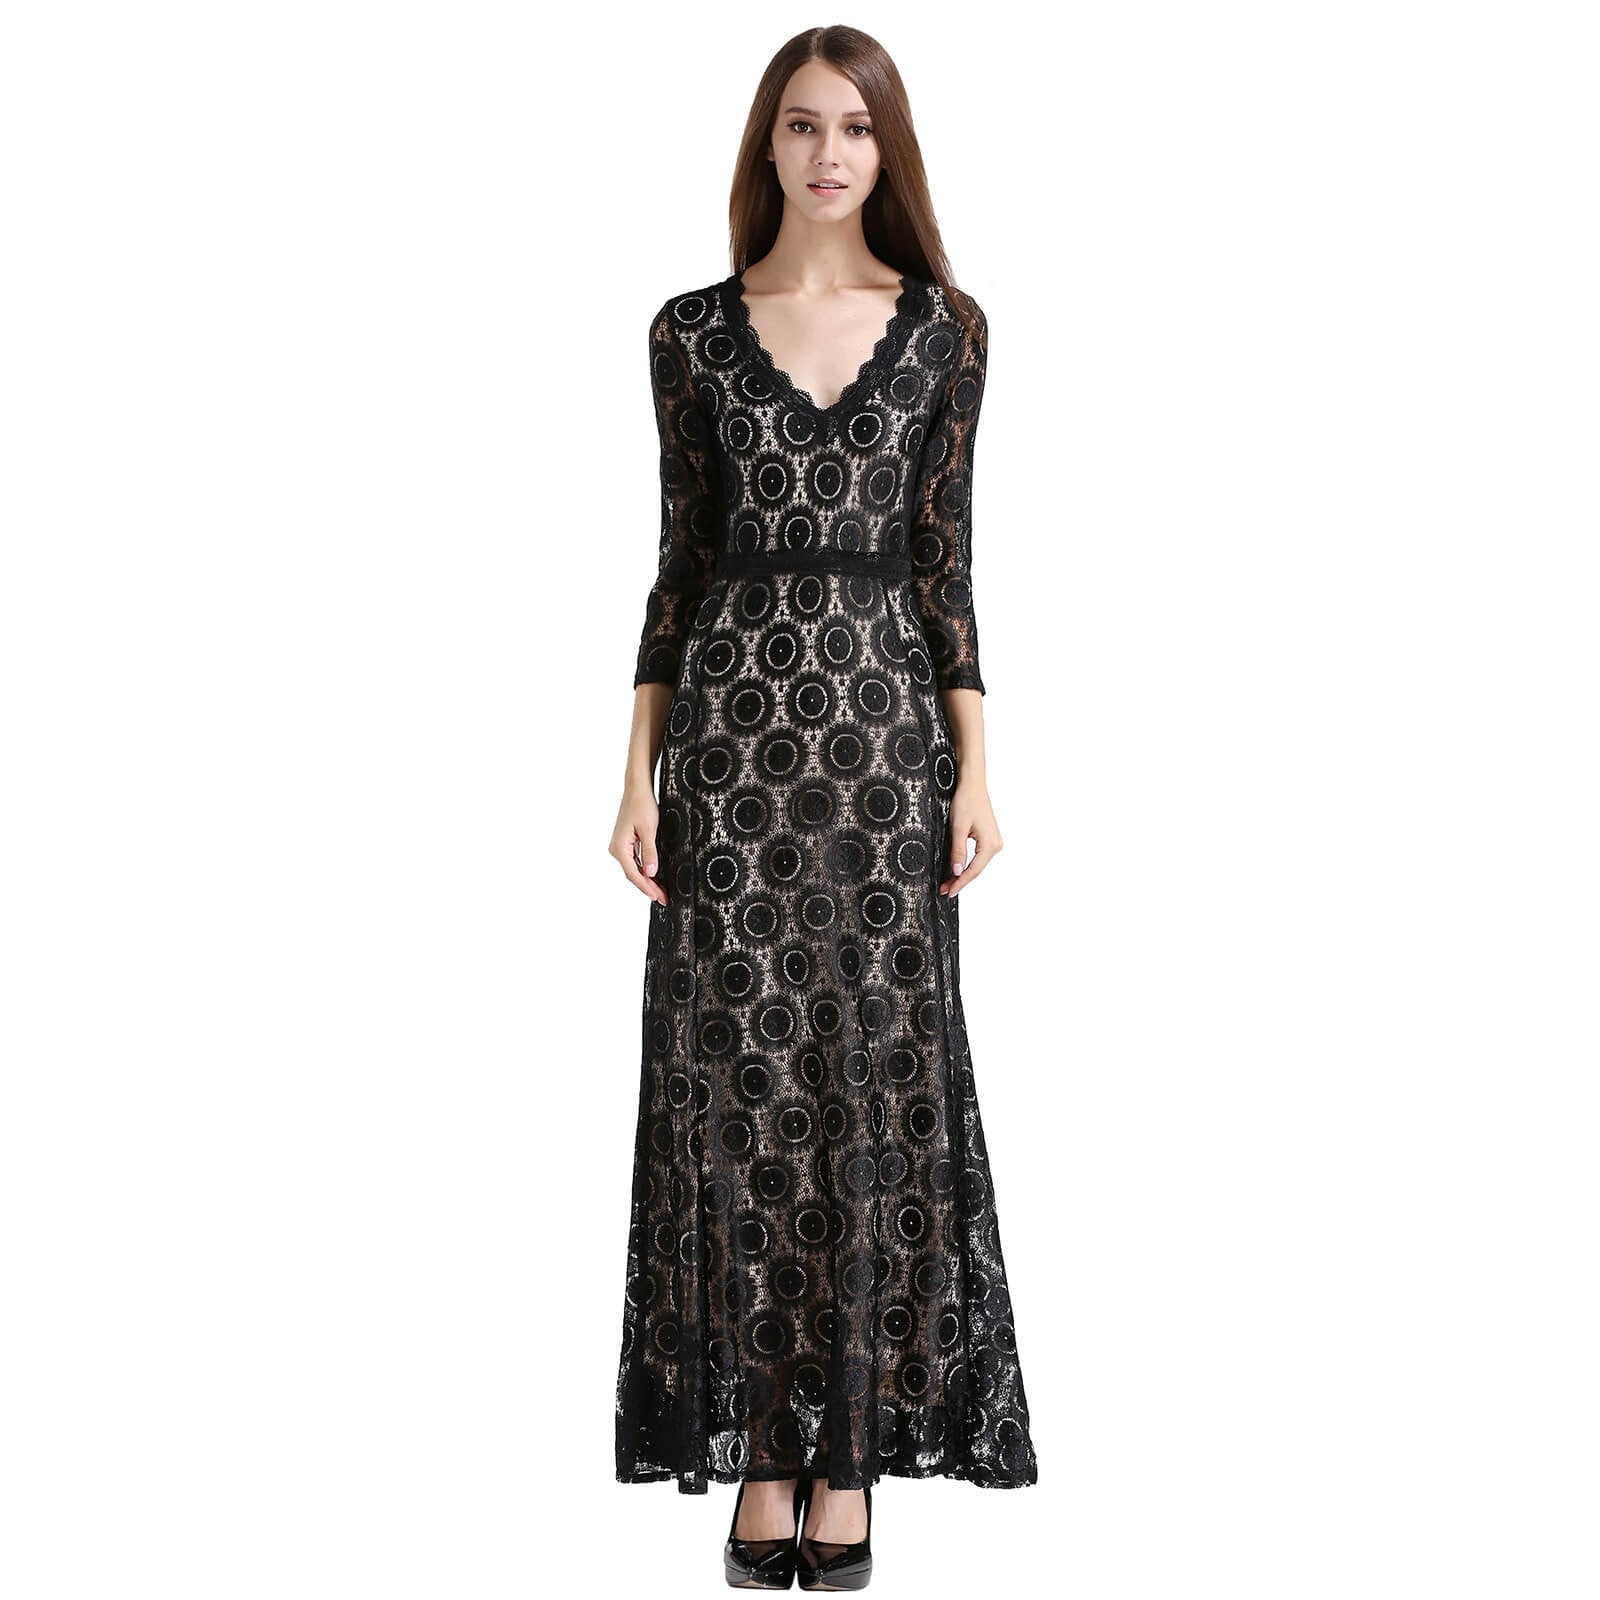 2/3 Sleeve Deep V-neck Floral Lace Long Evening Gown Dress ...